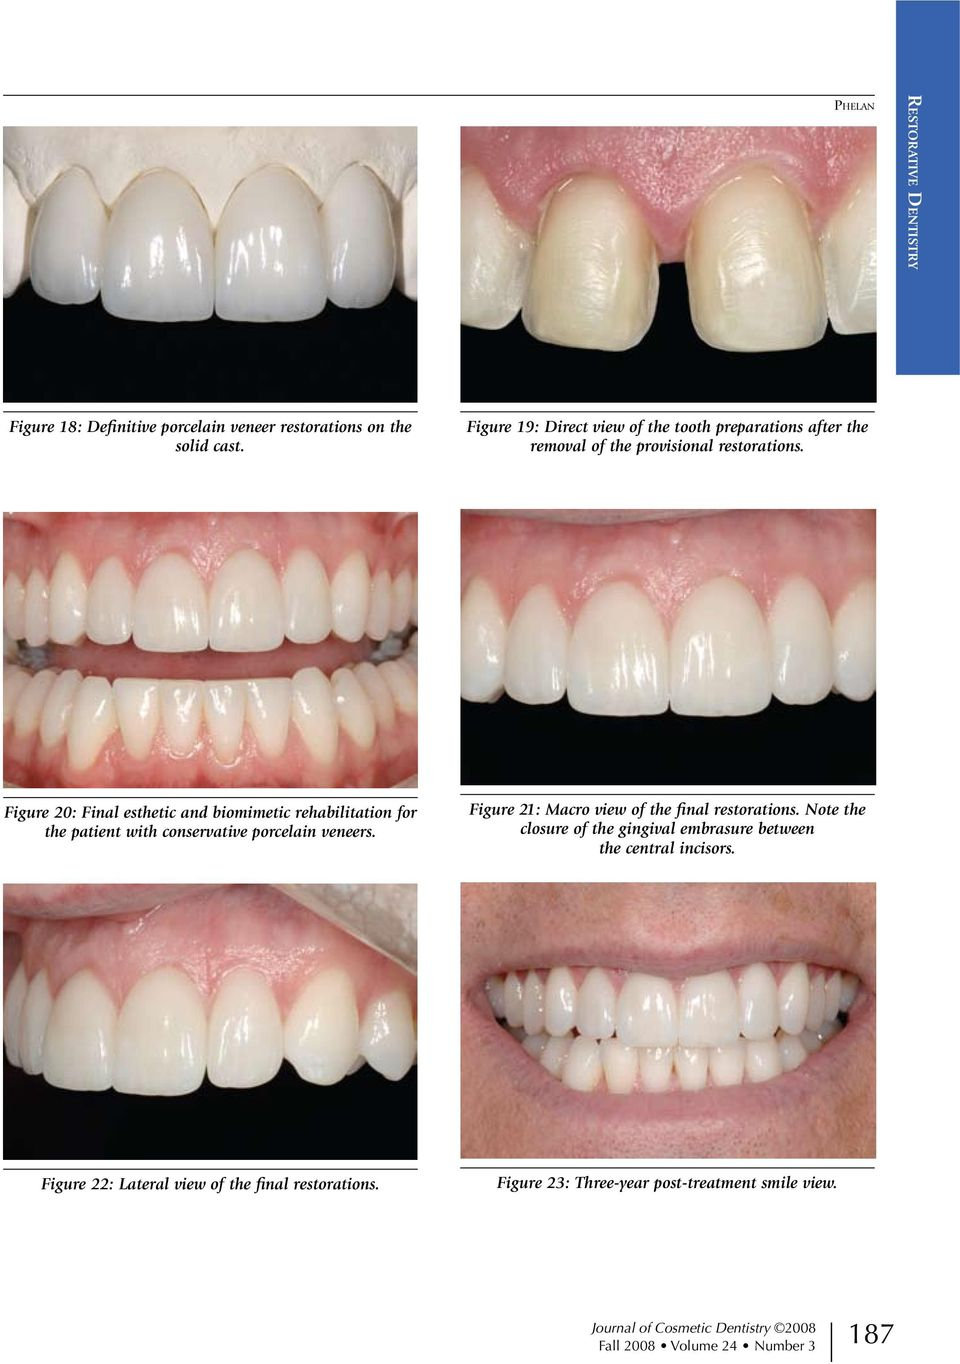 Figure 20: Final esthetic and biomimetic rehabilitation for the patient with conservative porcelain veneers.